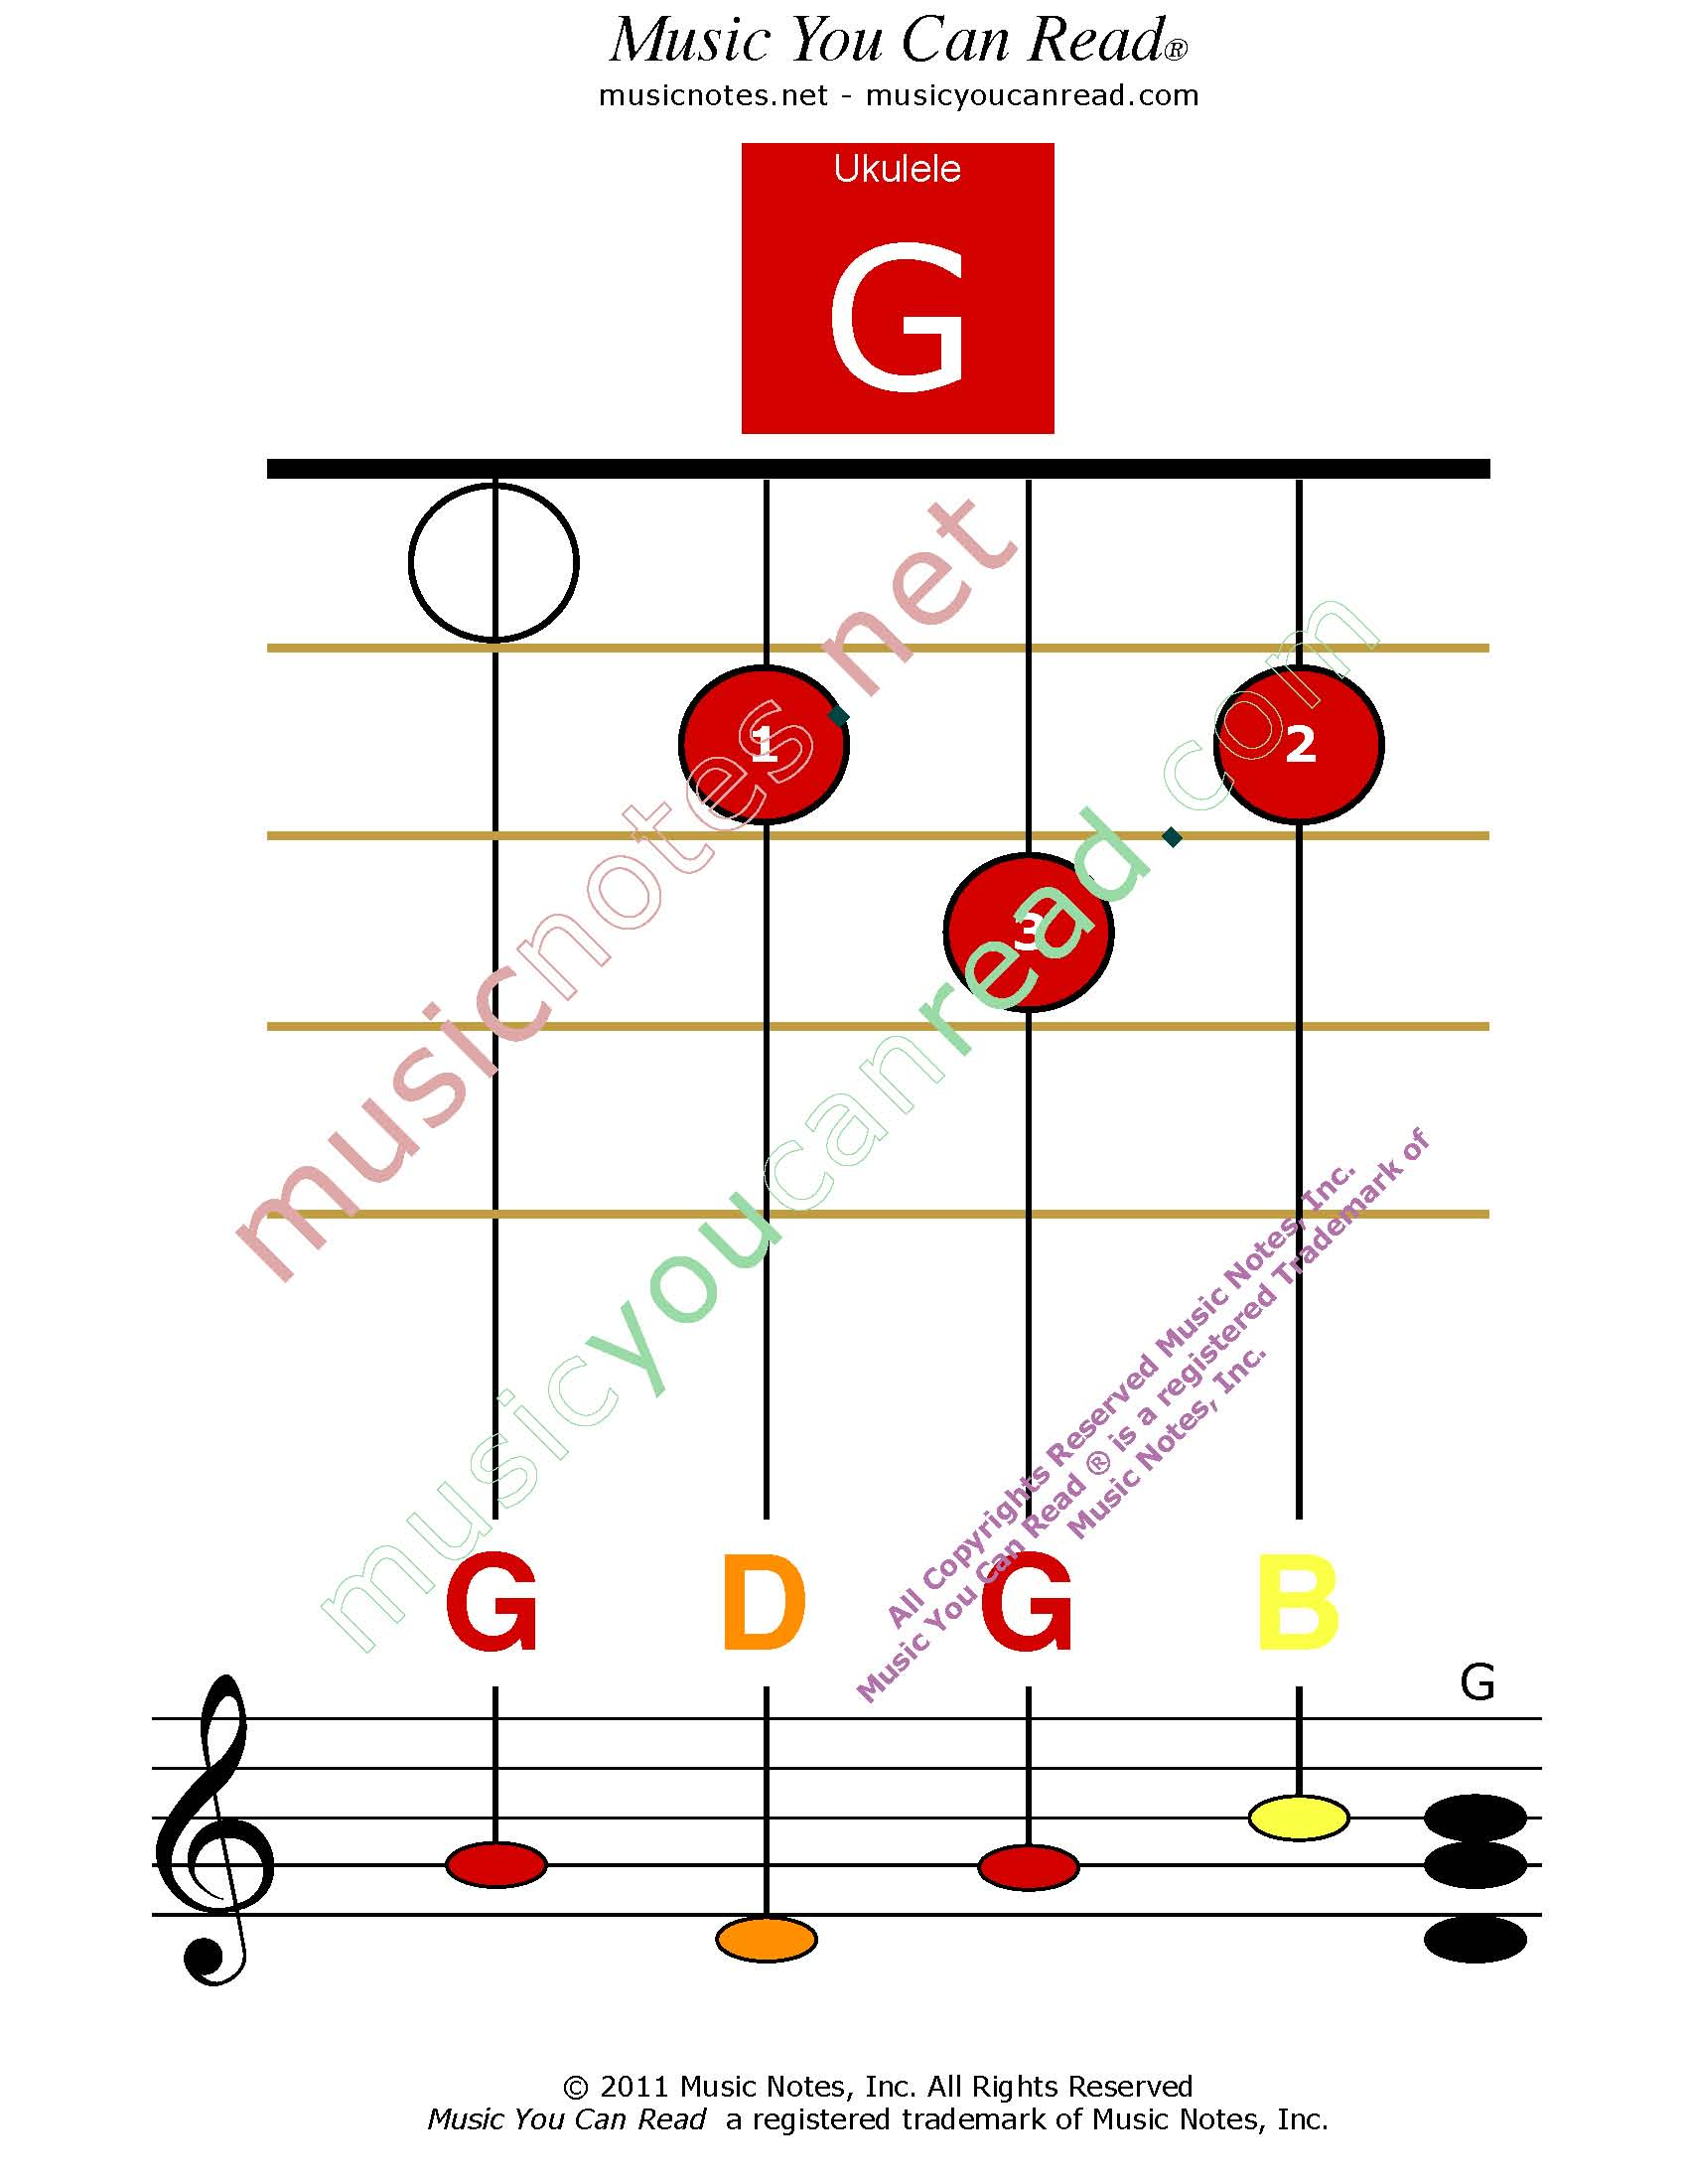 Music You Can Read Ukulele Chord Chart, G